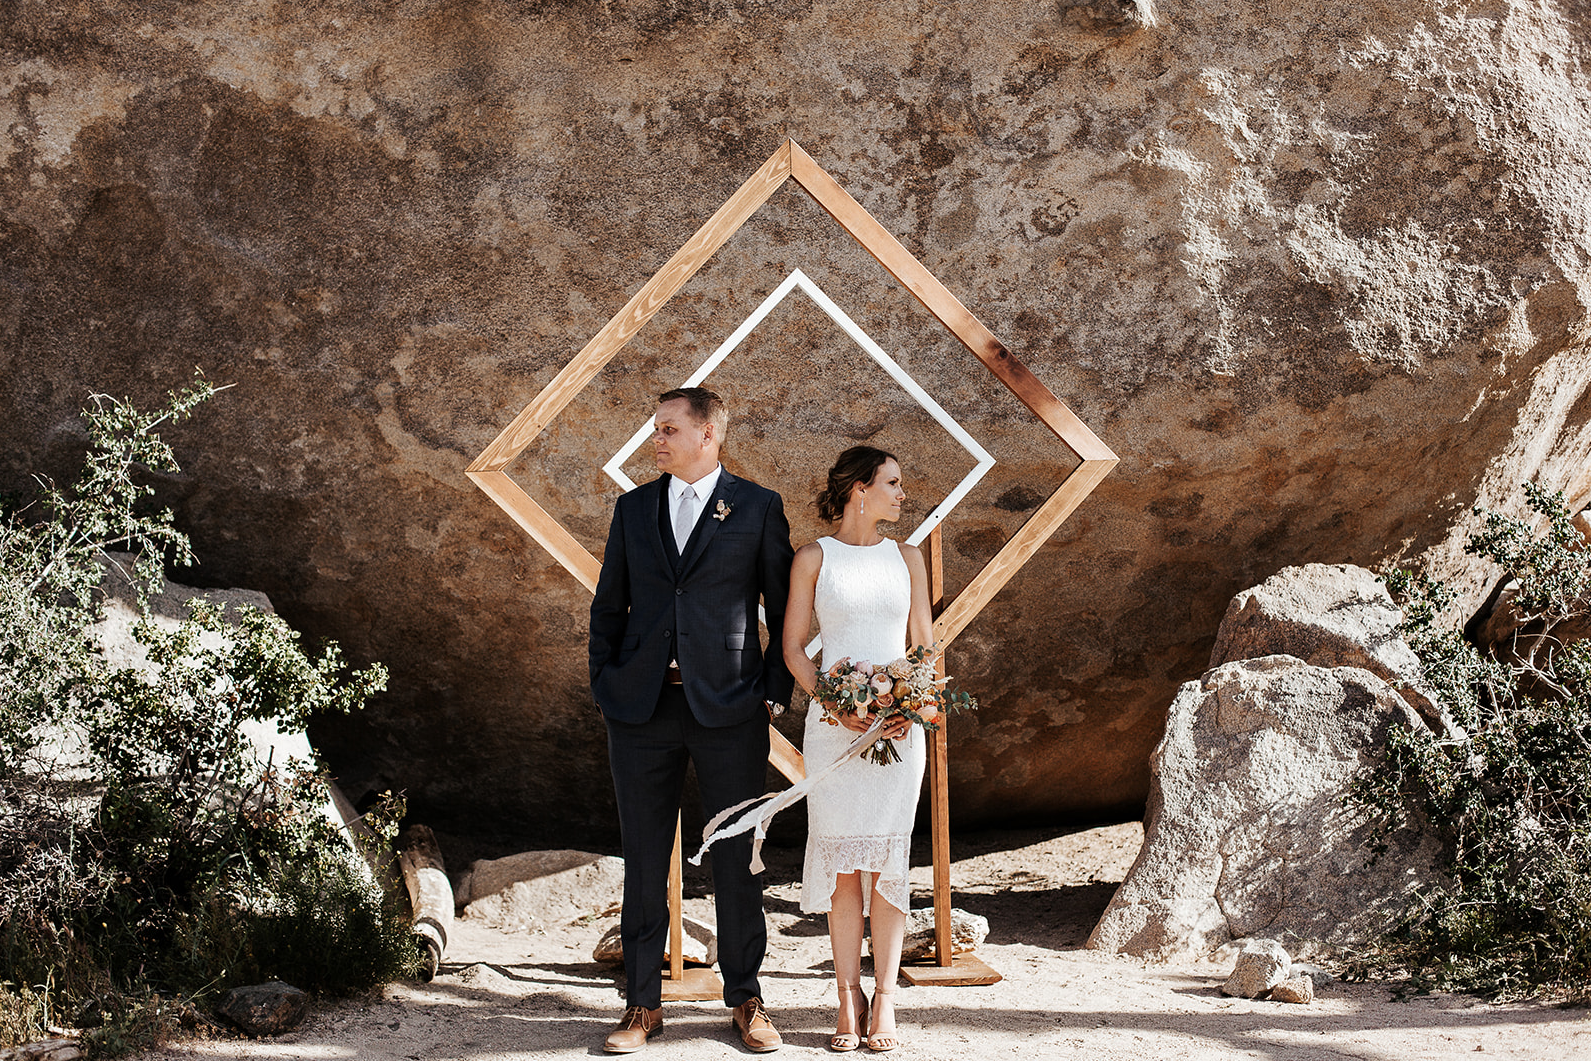 """""""I don't even know where to begin. We had a small 28 person wedding (which includes Darian) in Joshua Tree National Park and I didn't know what to expect for our wedding while looking through all of her gorgeous big traditional wedding photos. What ended up happening was absolute magic by Darian! We didn't go into our day will a photography plan, she just did her thing and it was perfect! She had complete control and I have had so many compliments on our wedding photos. And compliments on Darian in attendance (small wedding so she was in with the family!) Darian is fantastic and I highly recommend her! She is probably one of the sweetest people I know, she is professional, easy to communicate with, knows what she's doing, makes you feel comfortable and will completely capture your vibe. I will definitely be a return customer! Thank you Darian!""""  Jessica Jo"""